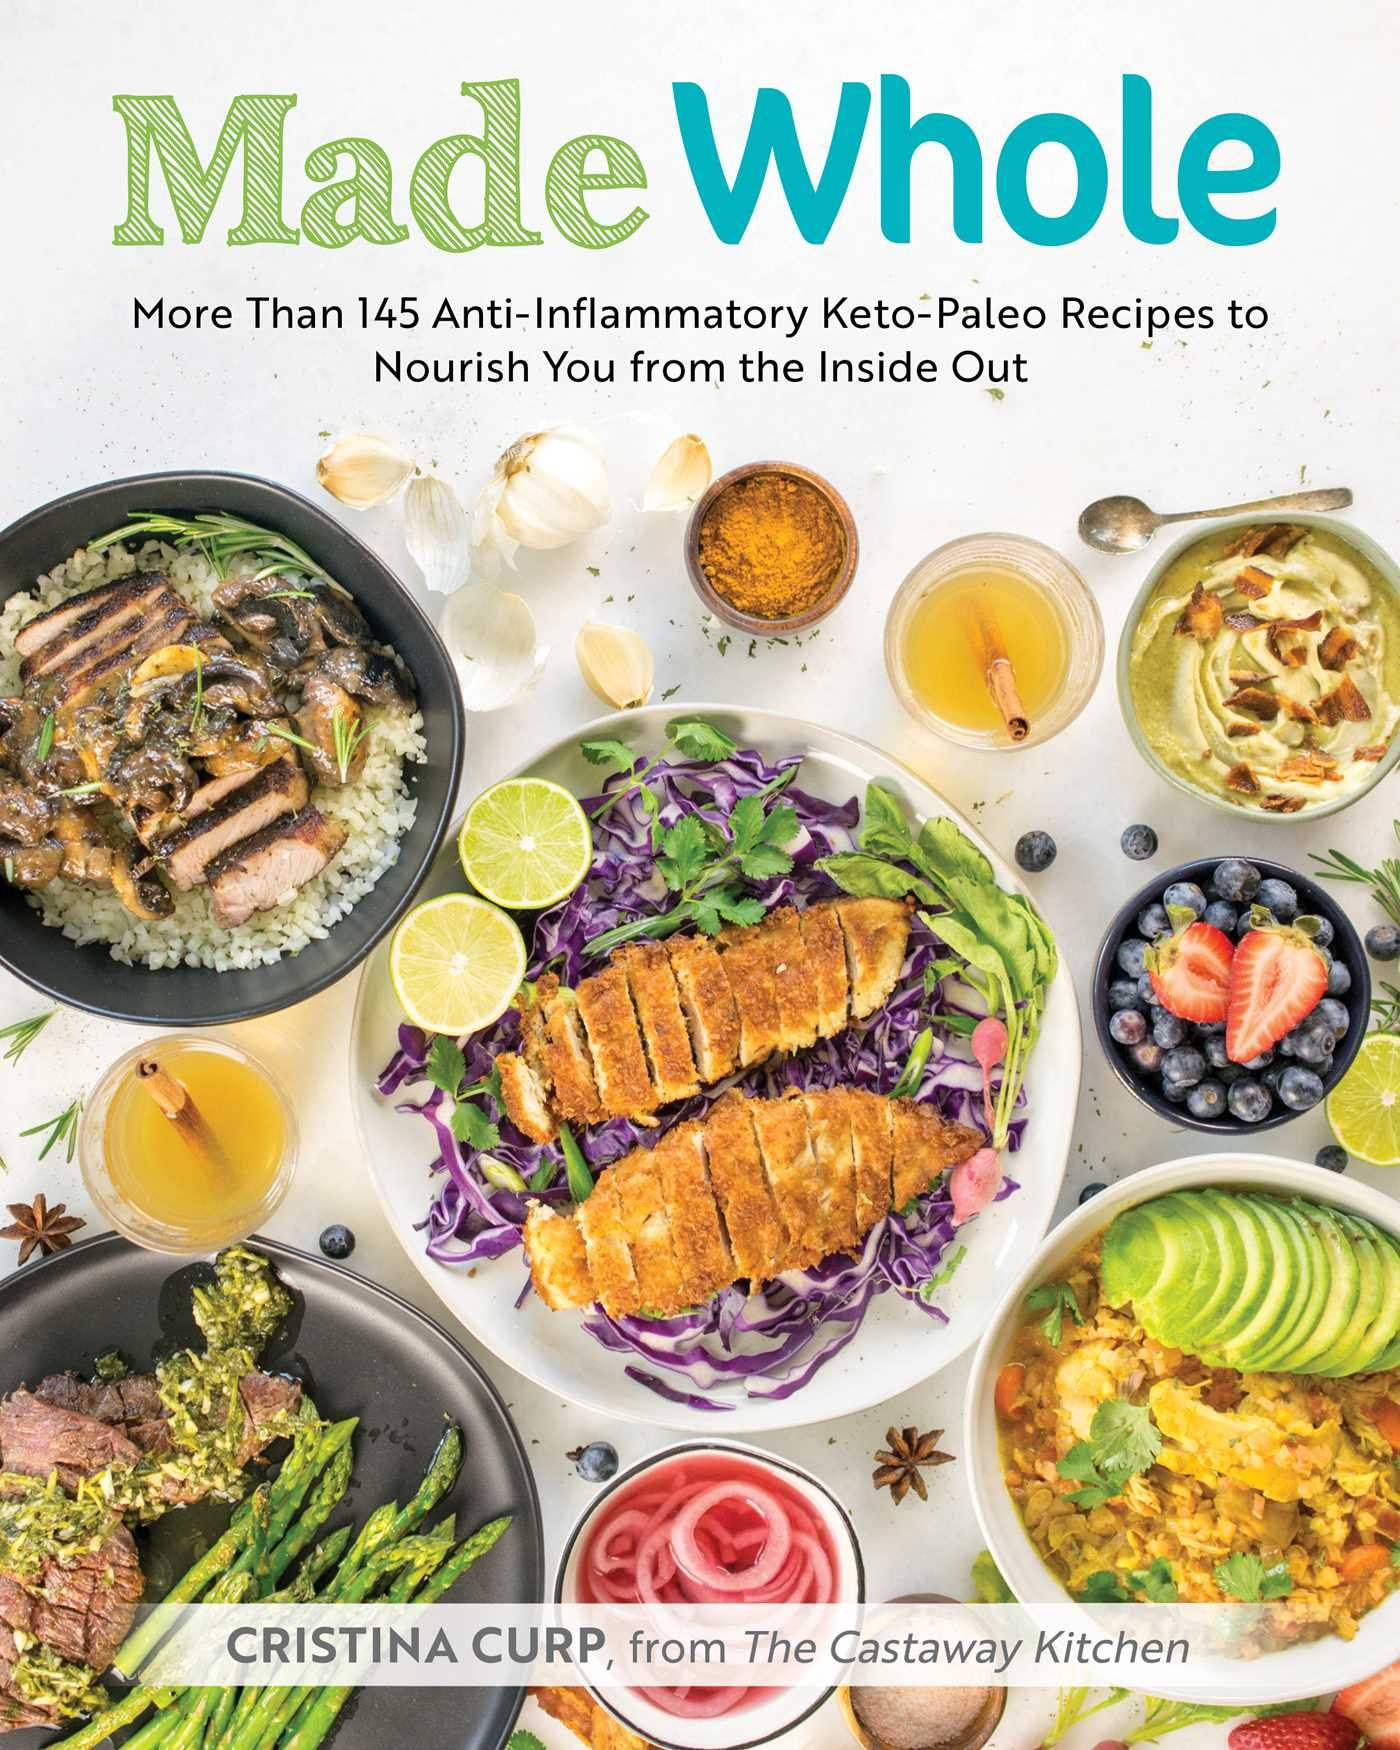 Made whole more than 145 anti lnflammatory keto paleo recipes to made whole more than 145 anti lnflammatory keto paleo recipes to nourish you from the inside out cristina curp 9781628602944 amazon books forumfinder Images